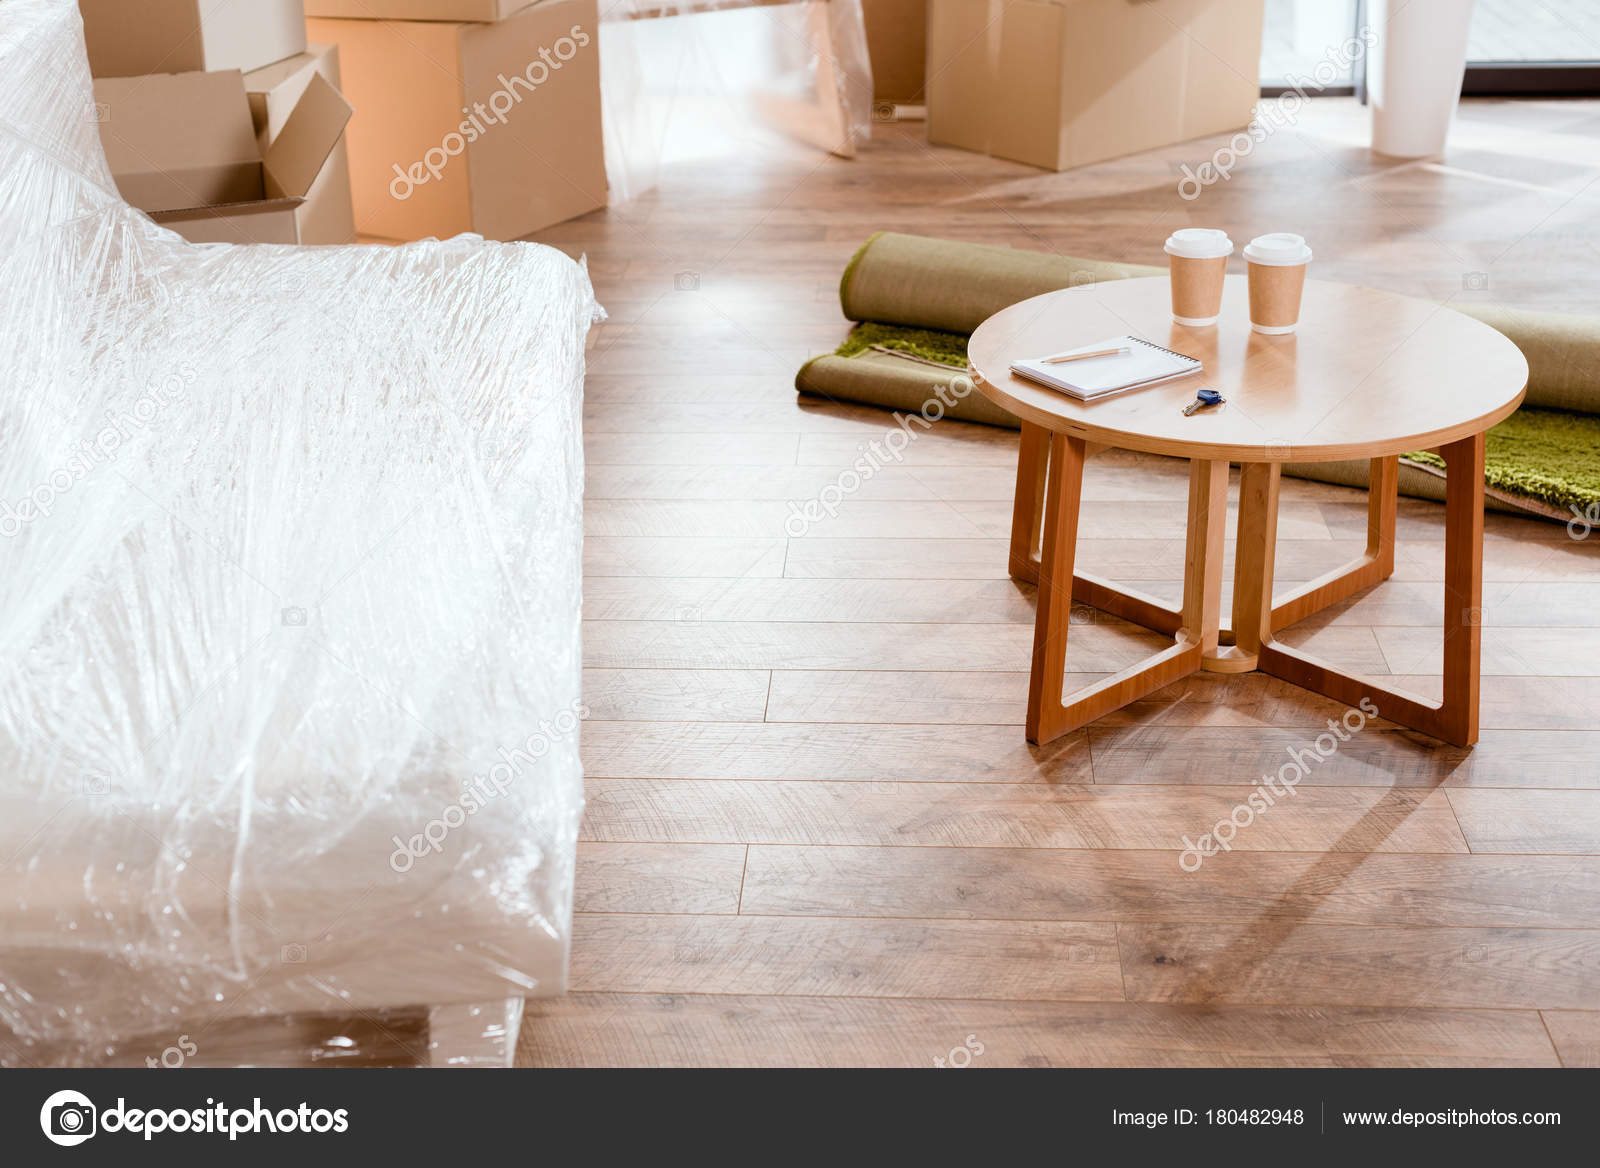 Coffee Table New Apartment Cardboard Boxes Stock Photo